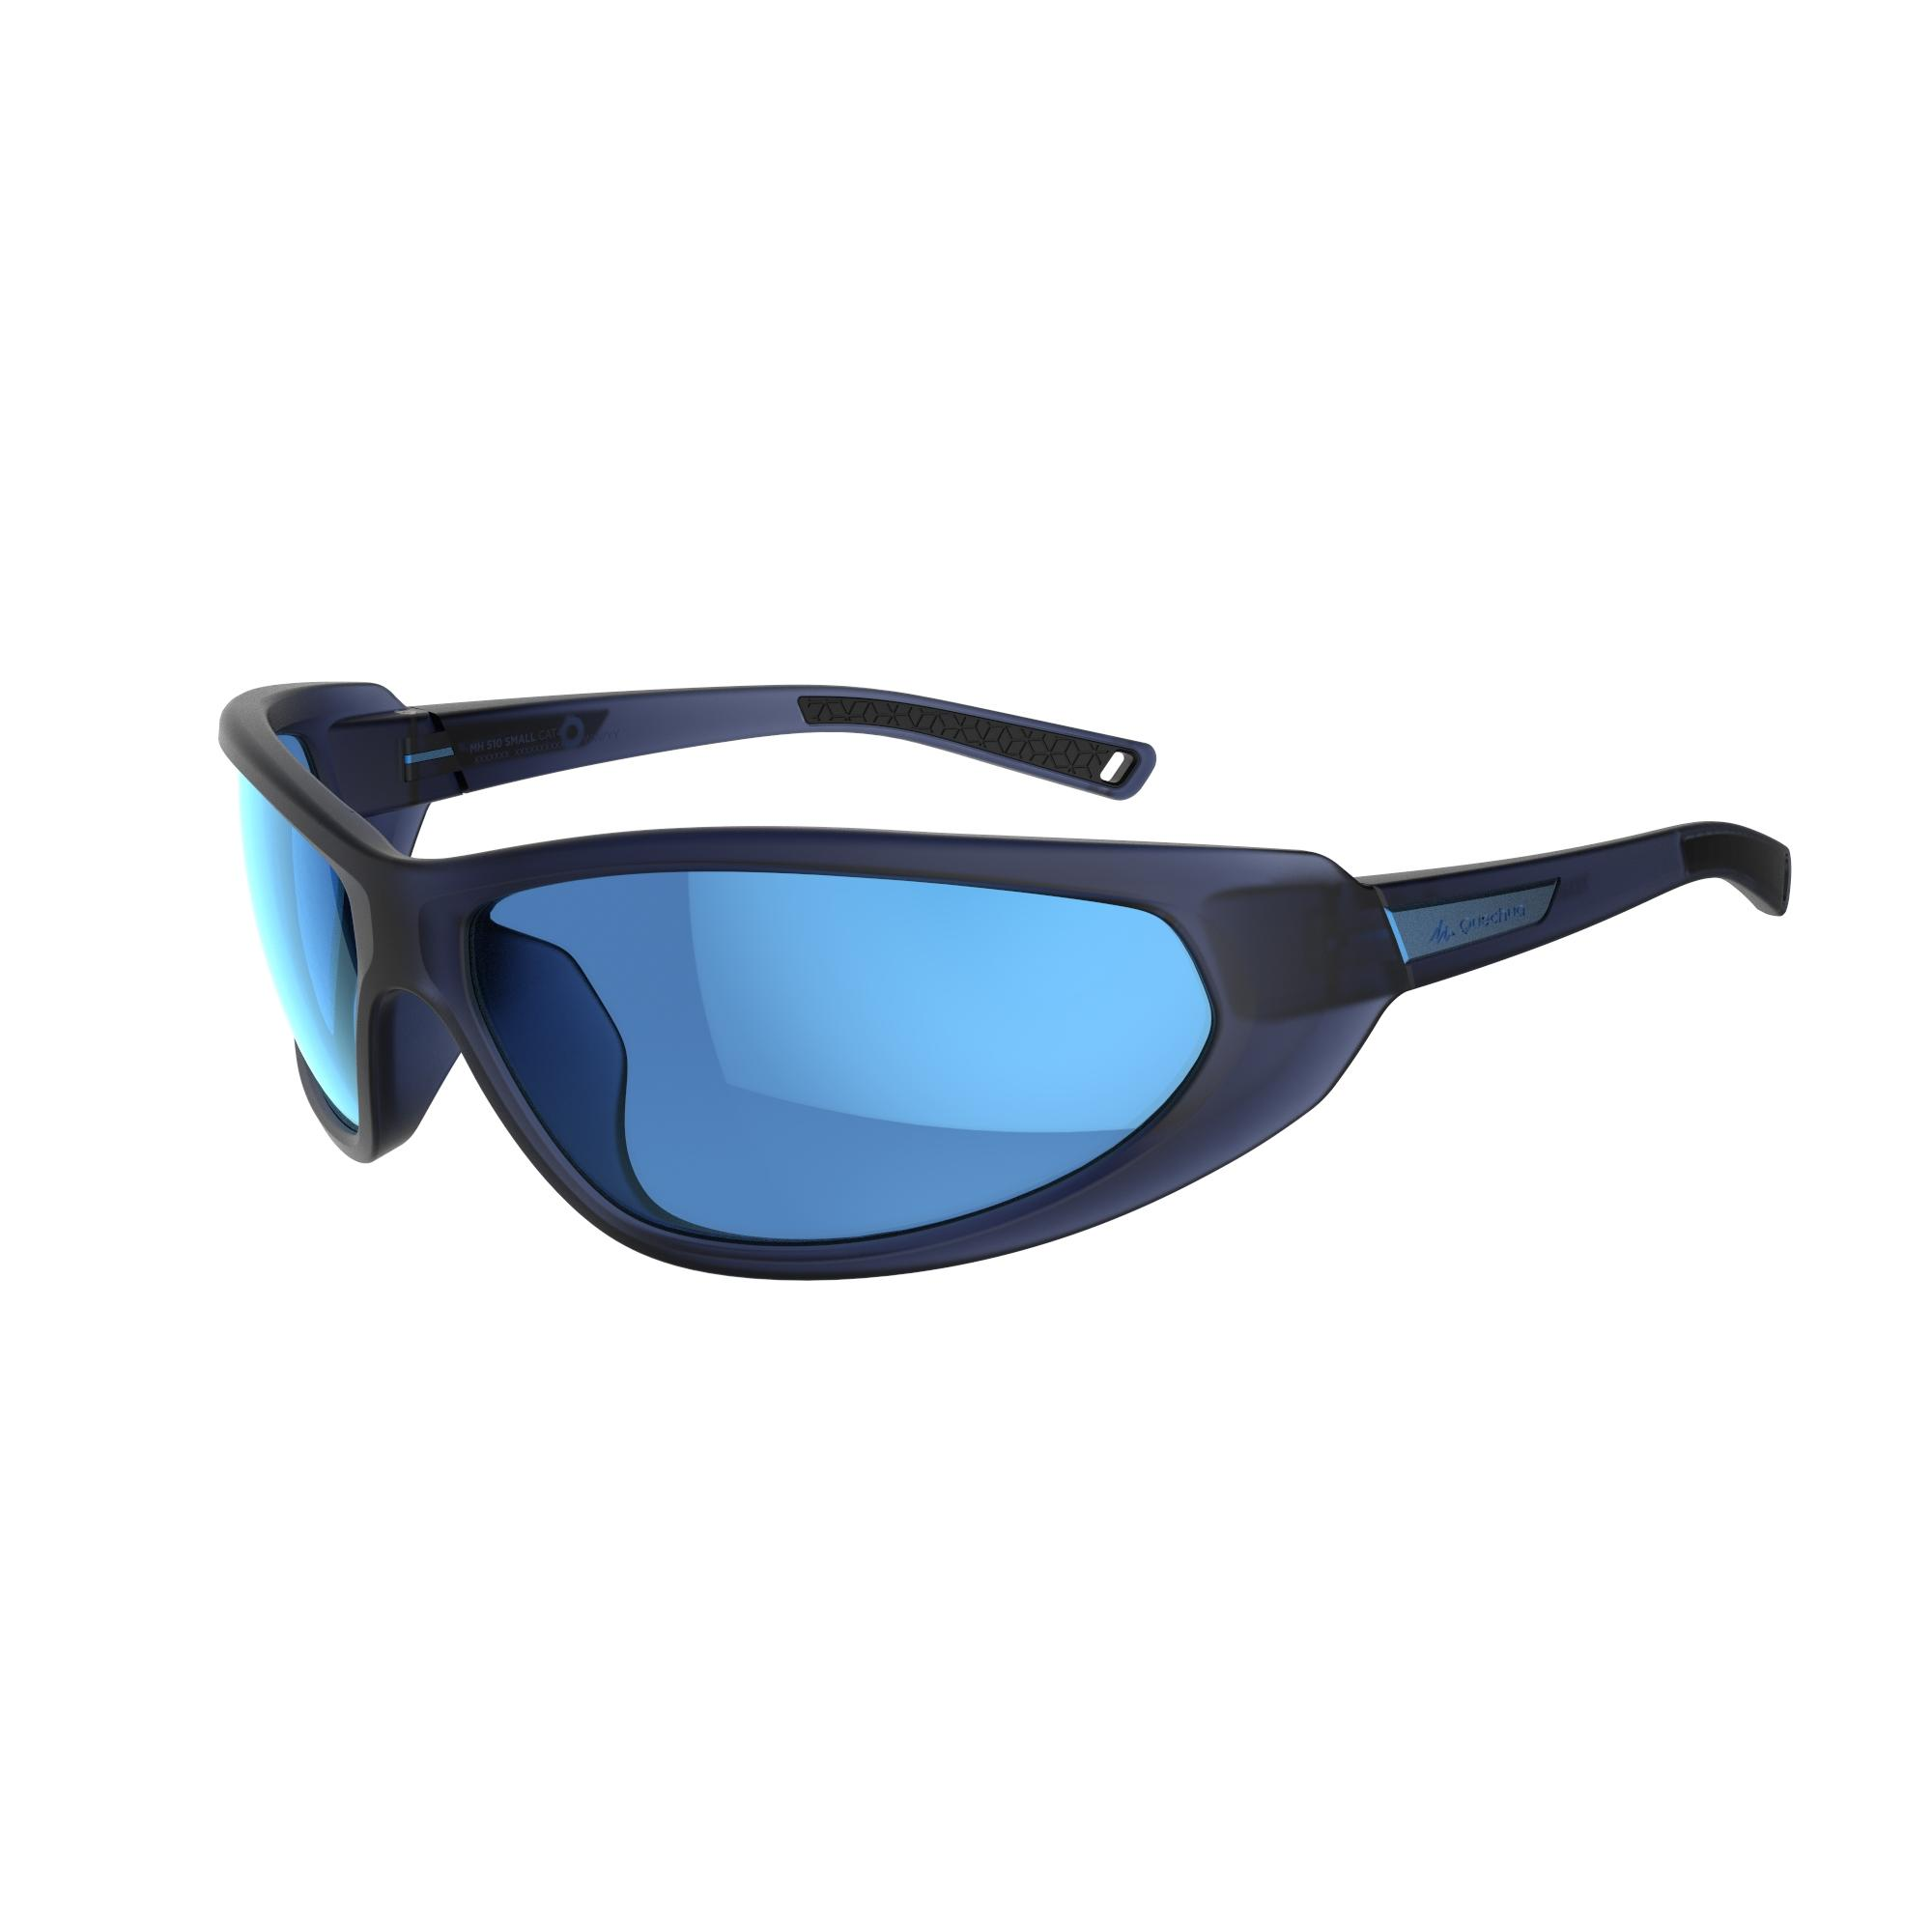 MH 510 S hiking glasses for smaller faces - Blue - Cat 4